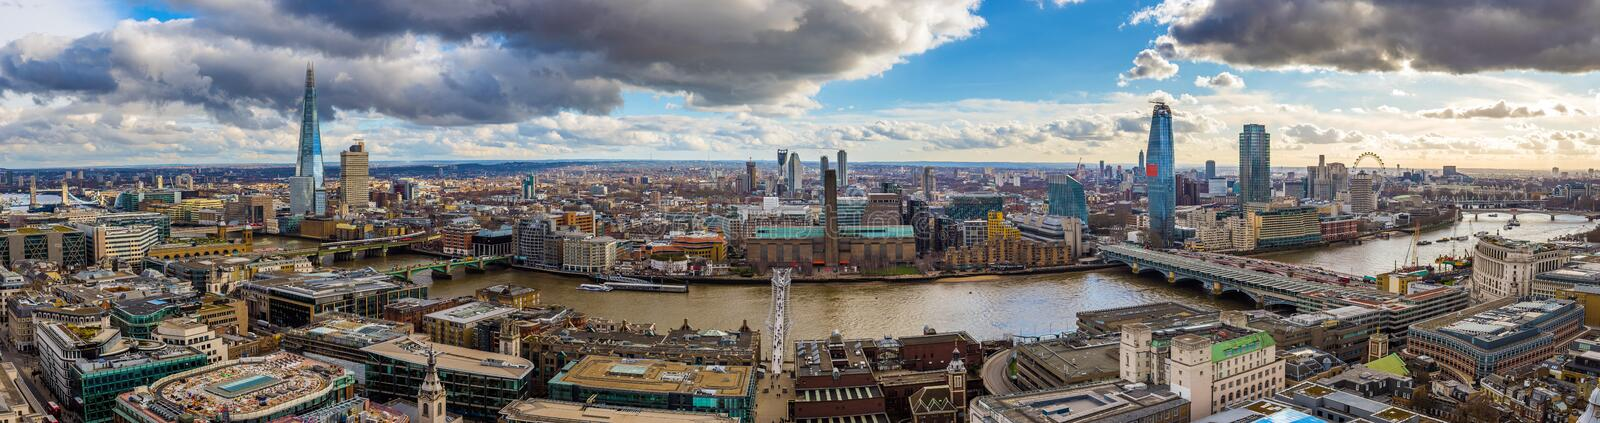 London, England - Panoramic skyline view of London with Millennium Bridge, famous skyscrapers and other landmarks. With beautiful blue sky and clouds royalty free stock images